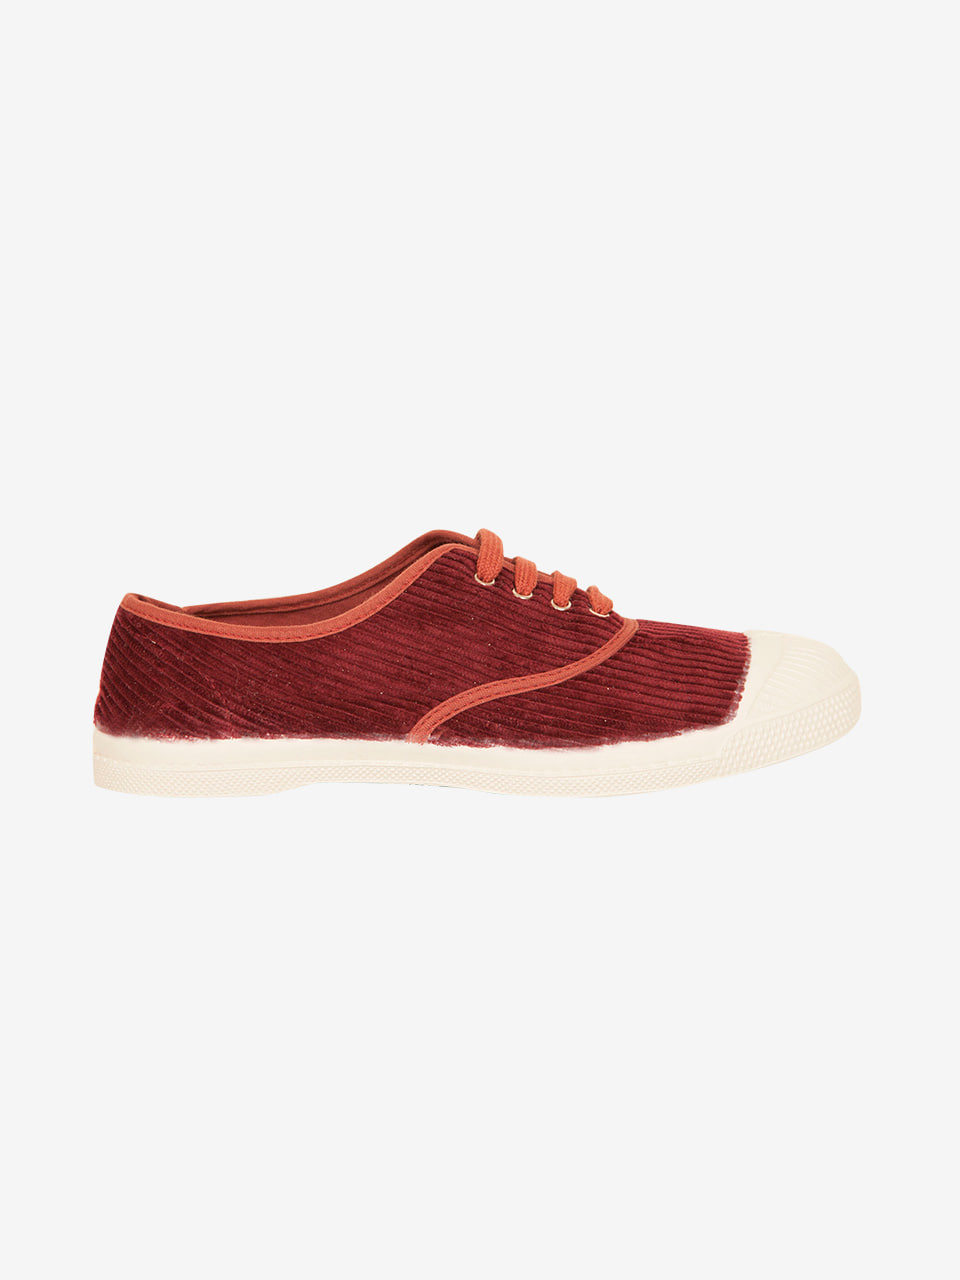 [Woman Tennis Lacet Corduroy Limited] Burgundy